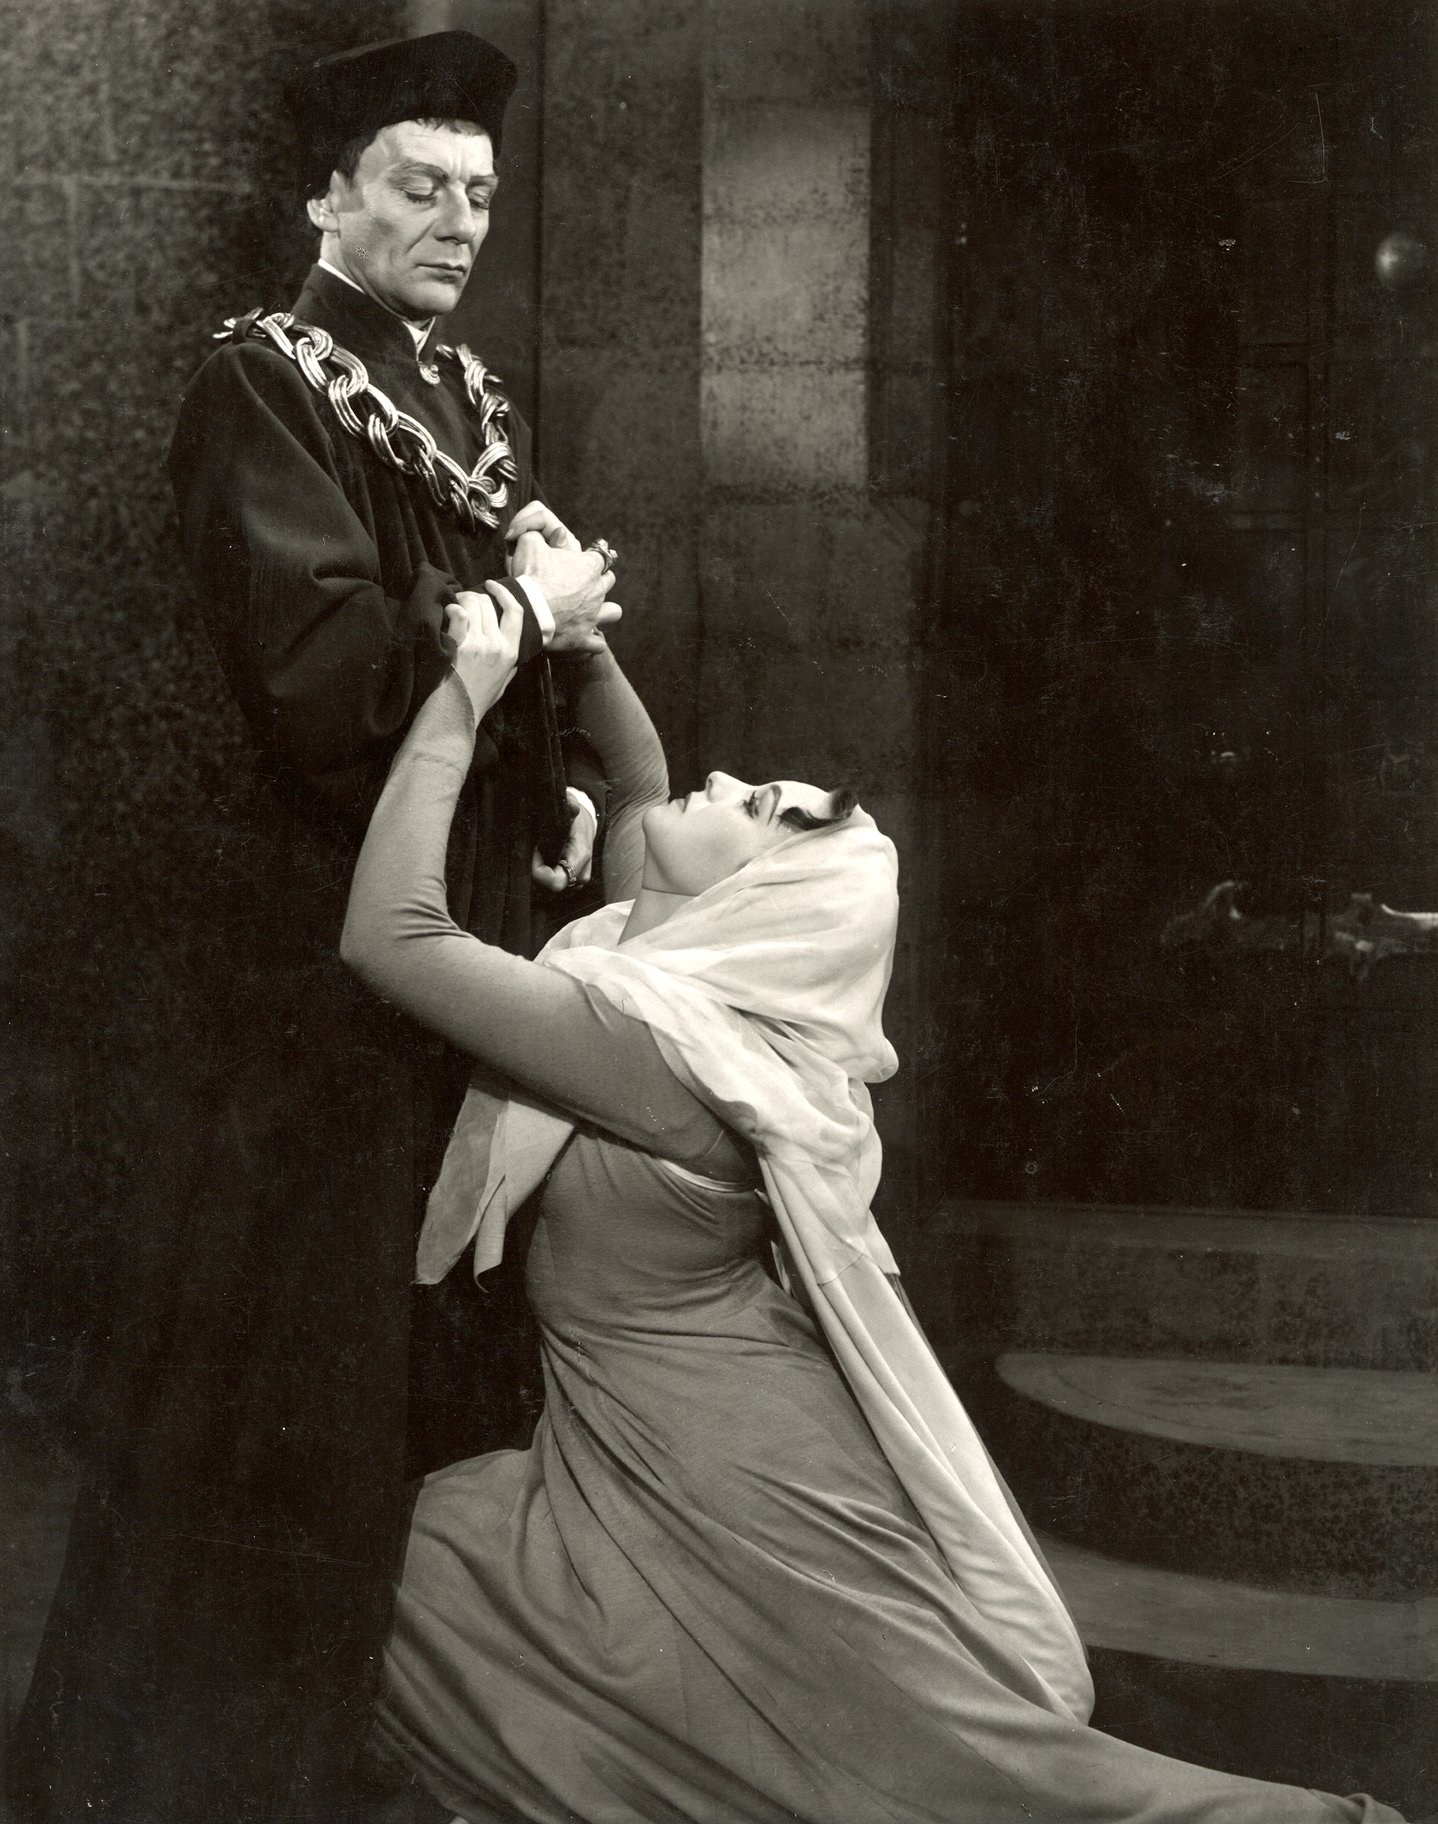 A woman pleads at the feet of an austere man.